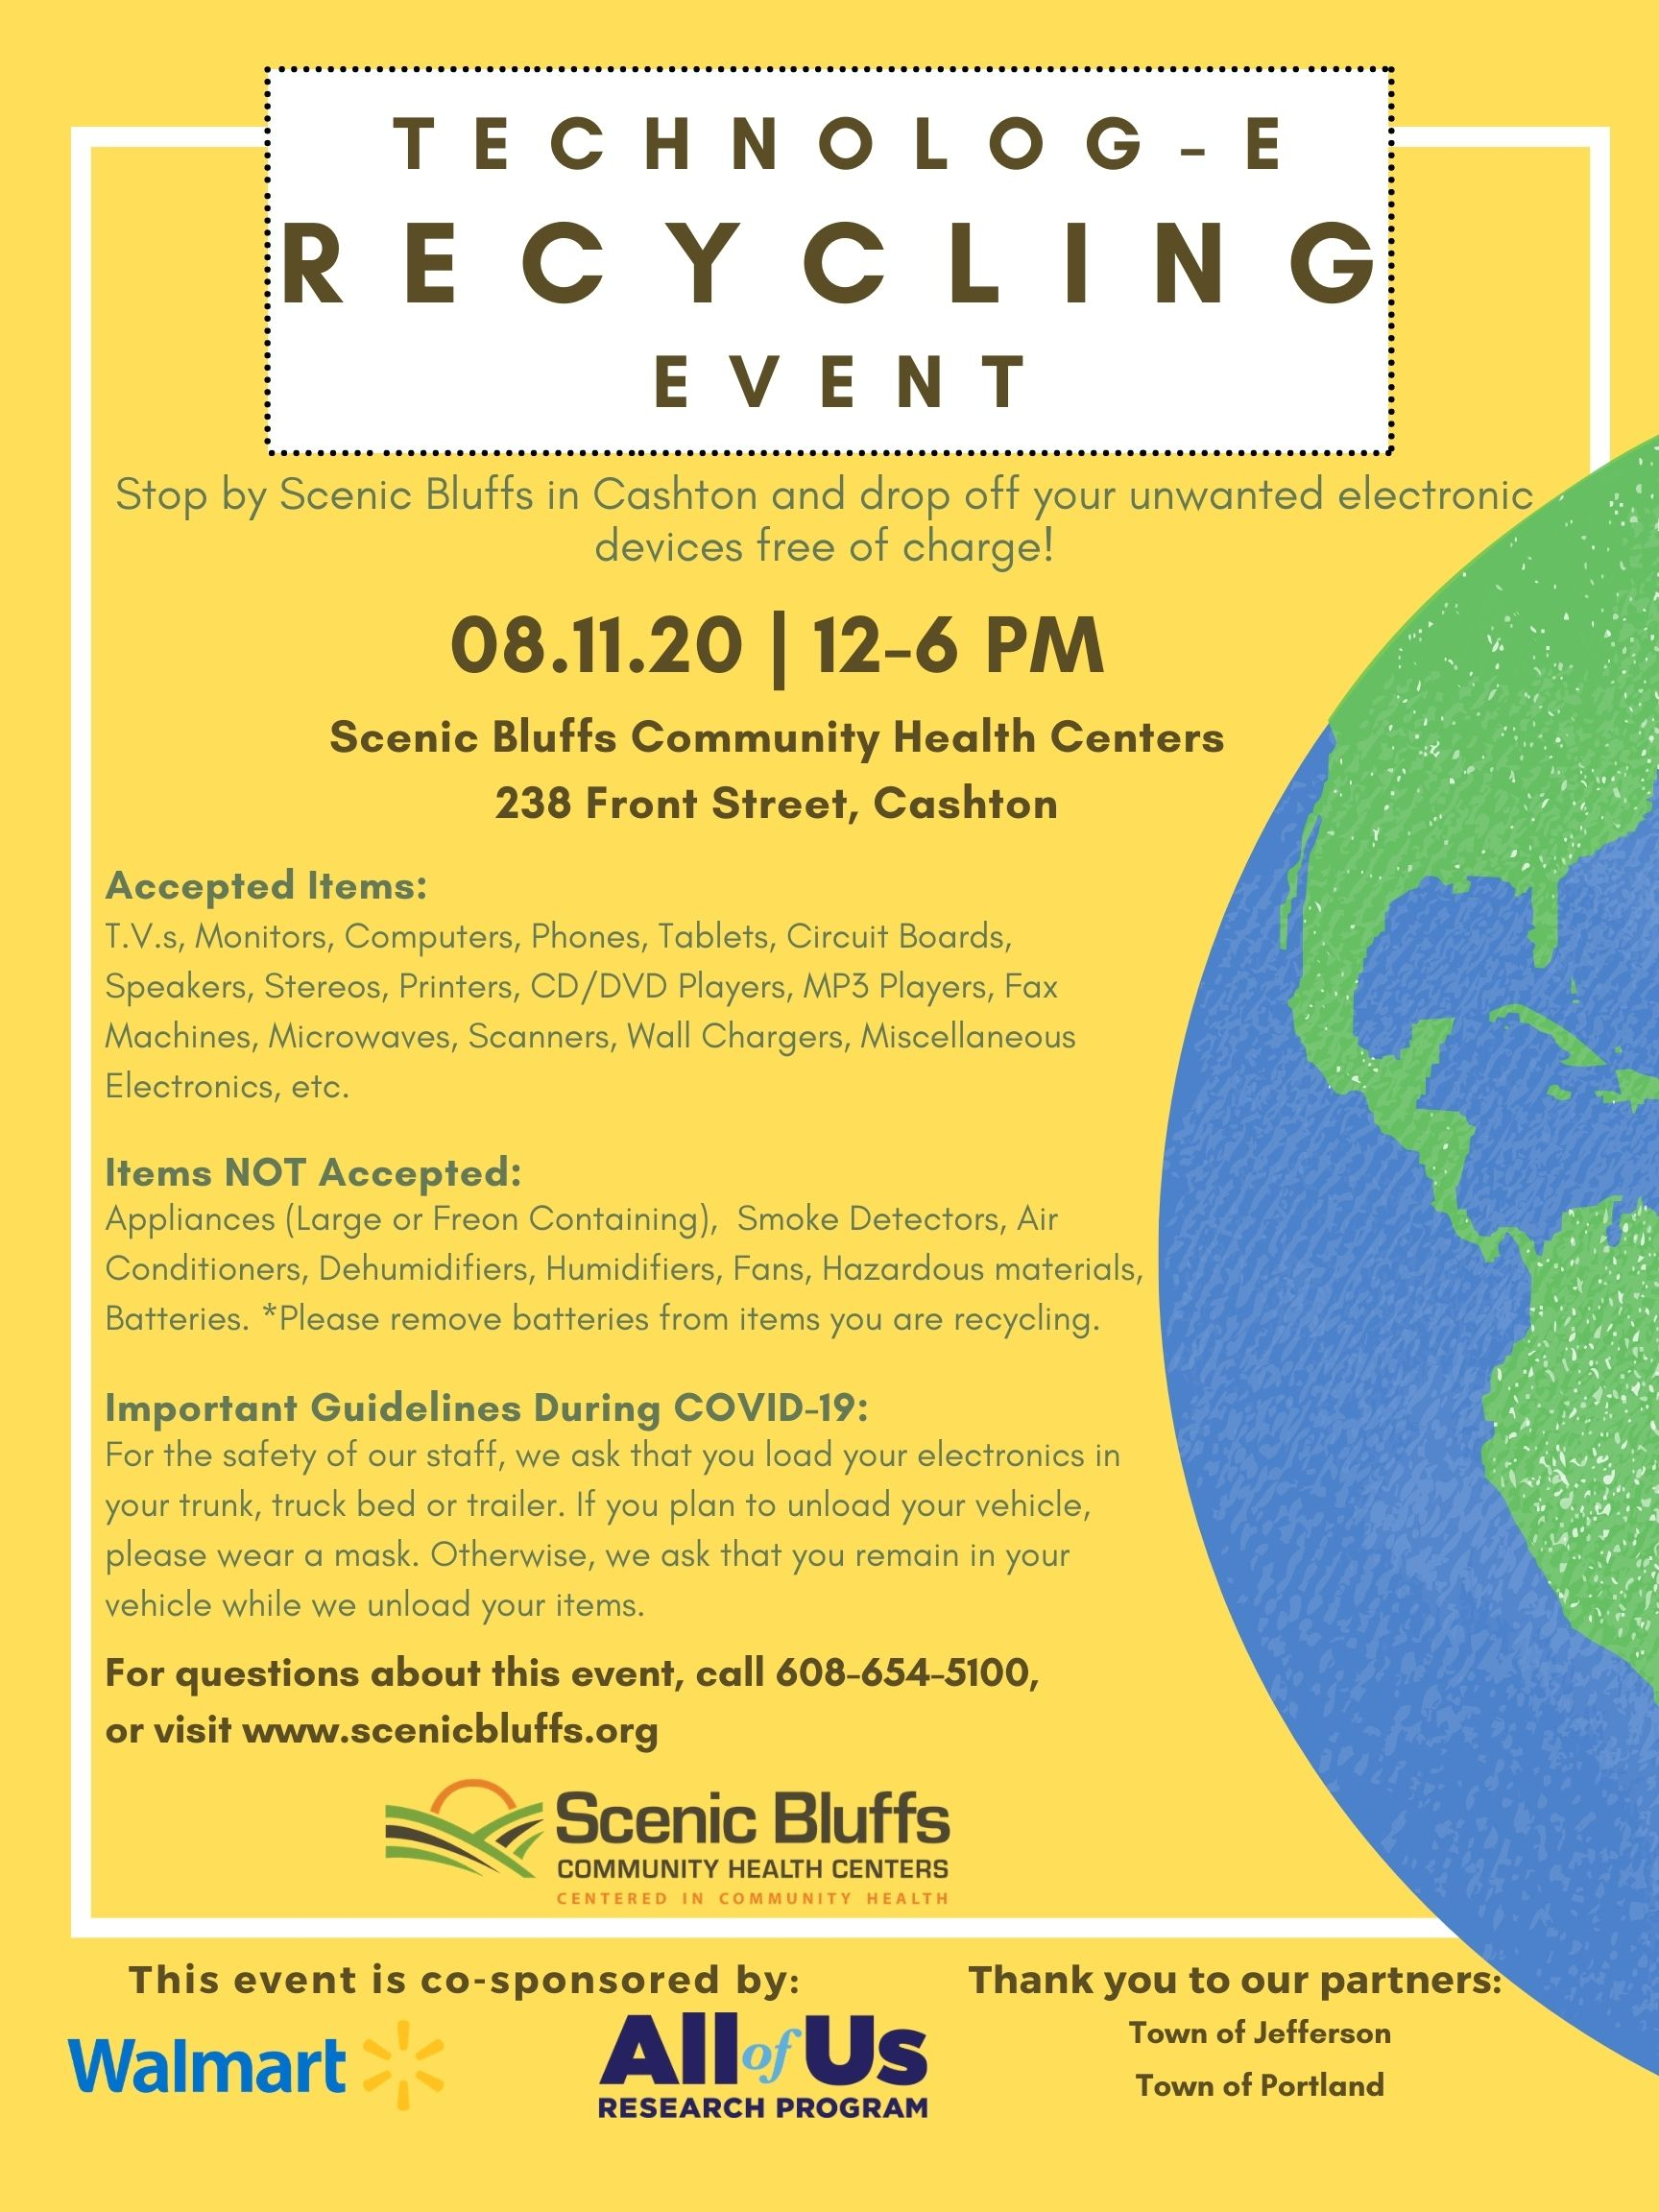 5th Annual Technolog-E Recycling Event